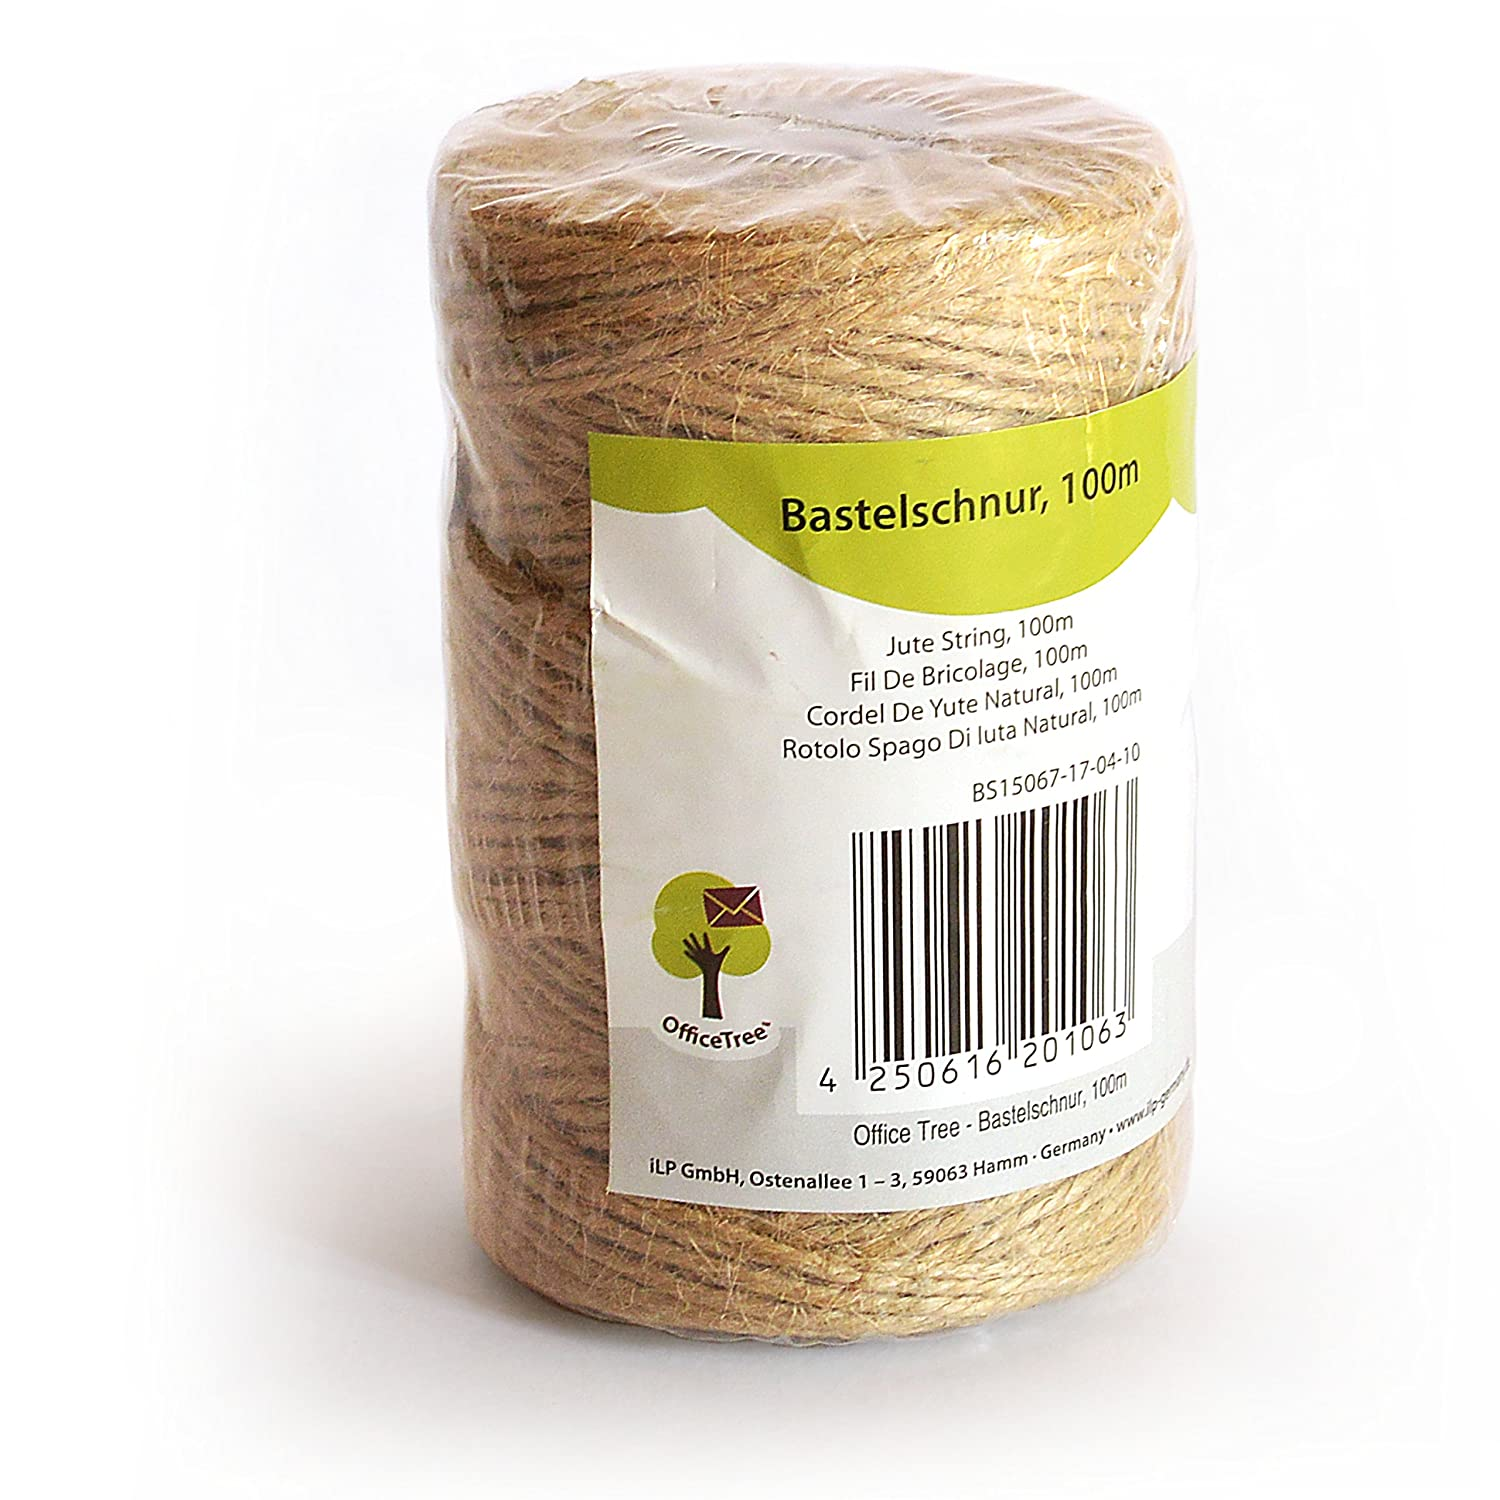 OfficeTree ® Craft Twine - 100 m Roll - Jute String - High Quality Natural Product for Household, Garden, Crafts, Decoration (1 Roll) iLP GmbH